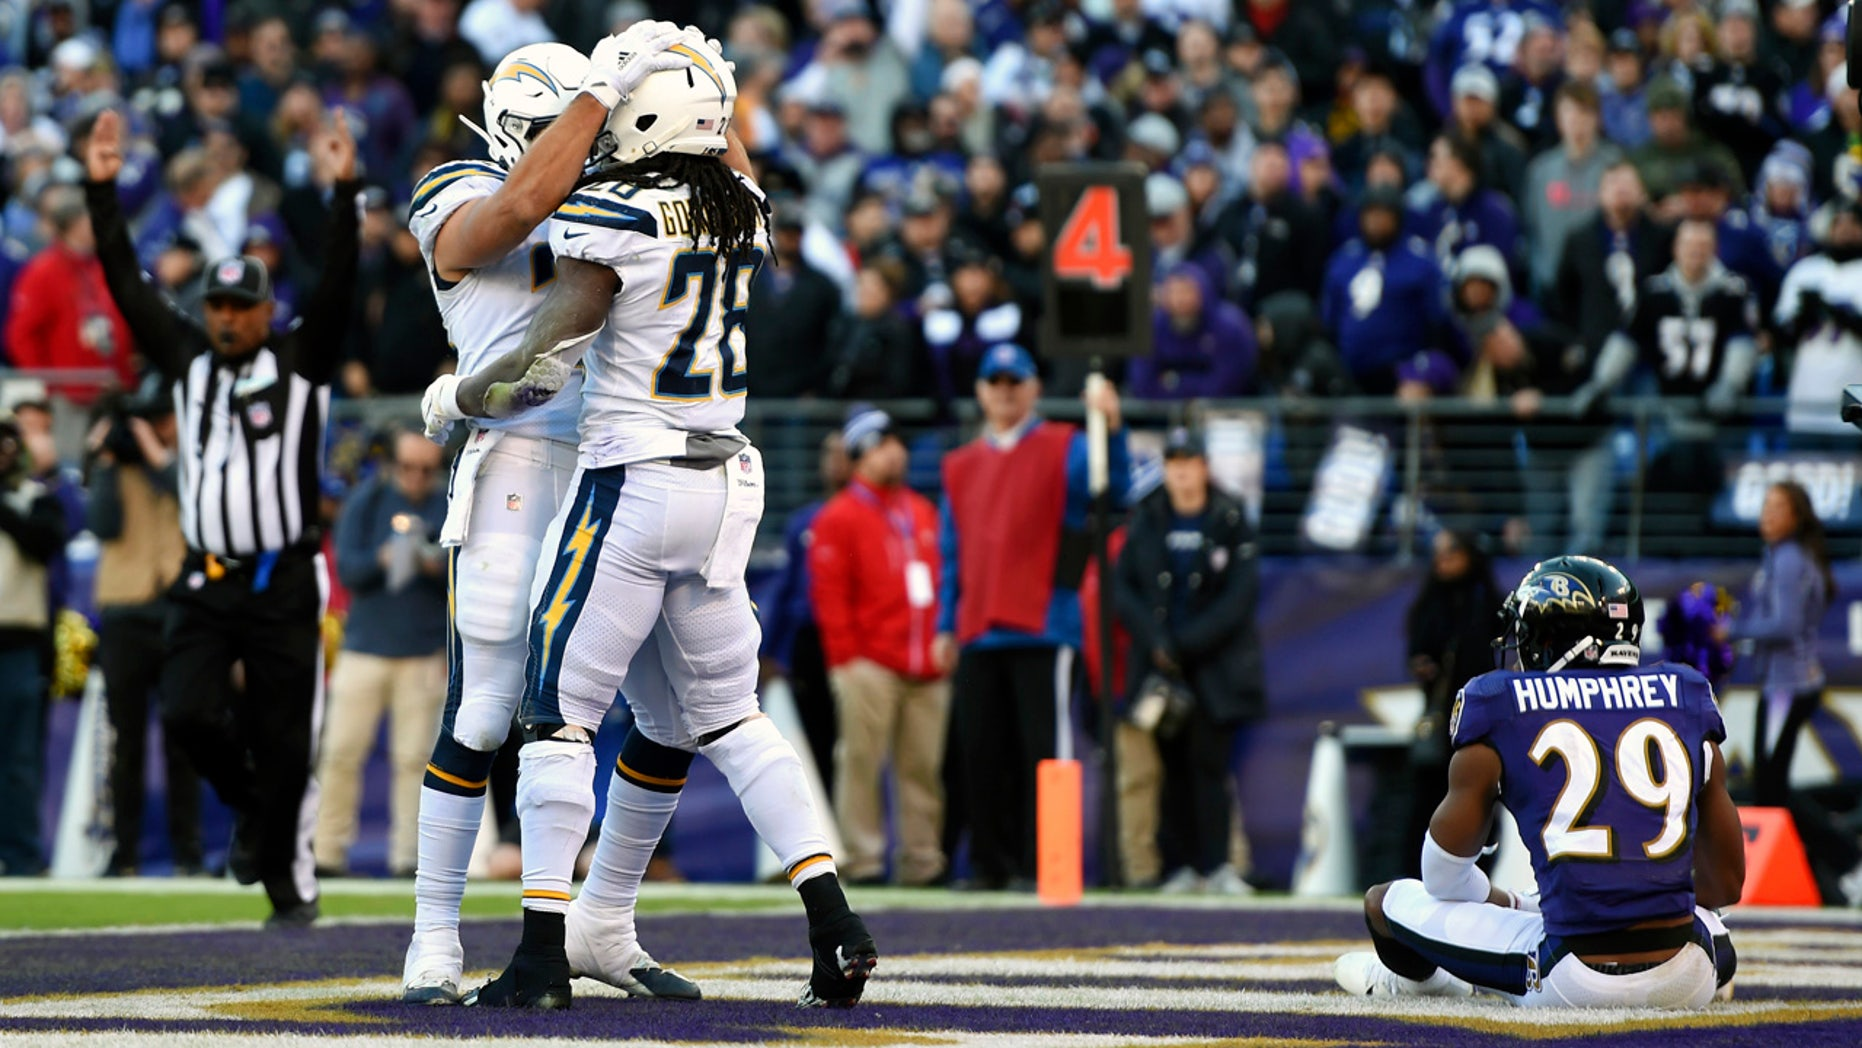 Los Angeles Chargers running back Melvin Gordon (28) celebrates his touchdown with teammate Derek Watt in front of Baltimore Ravens cornerback Marlon Humphrey (29) in the second half of an NFL wild card playoff football game, Sunday, Jan. 6, 2019, in Baltimore. (AP Photo/Gail Burton)